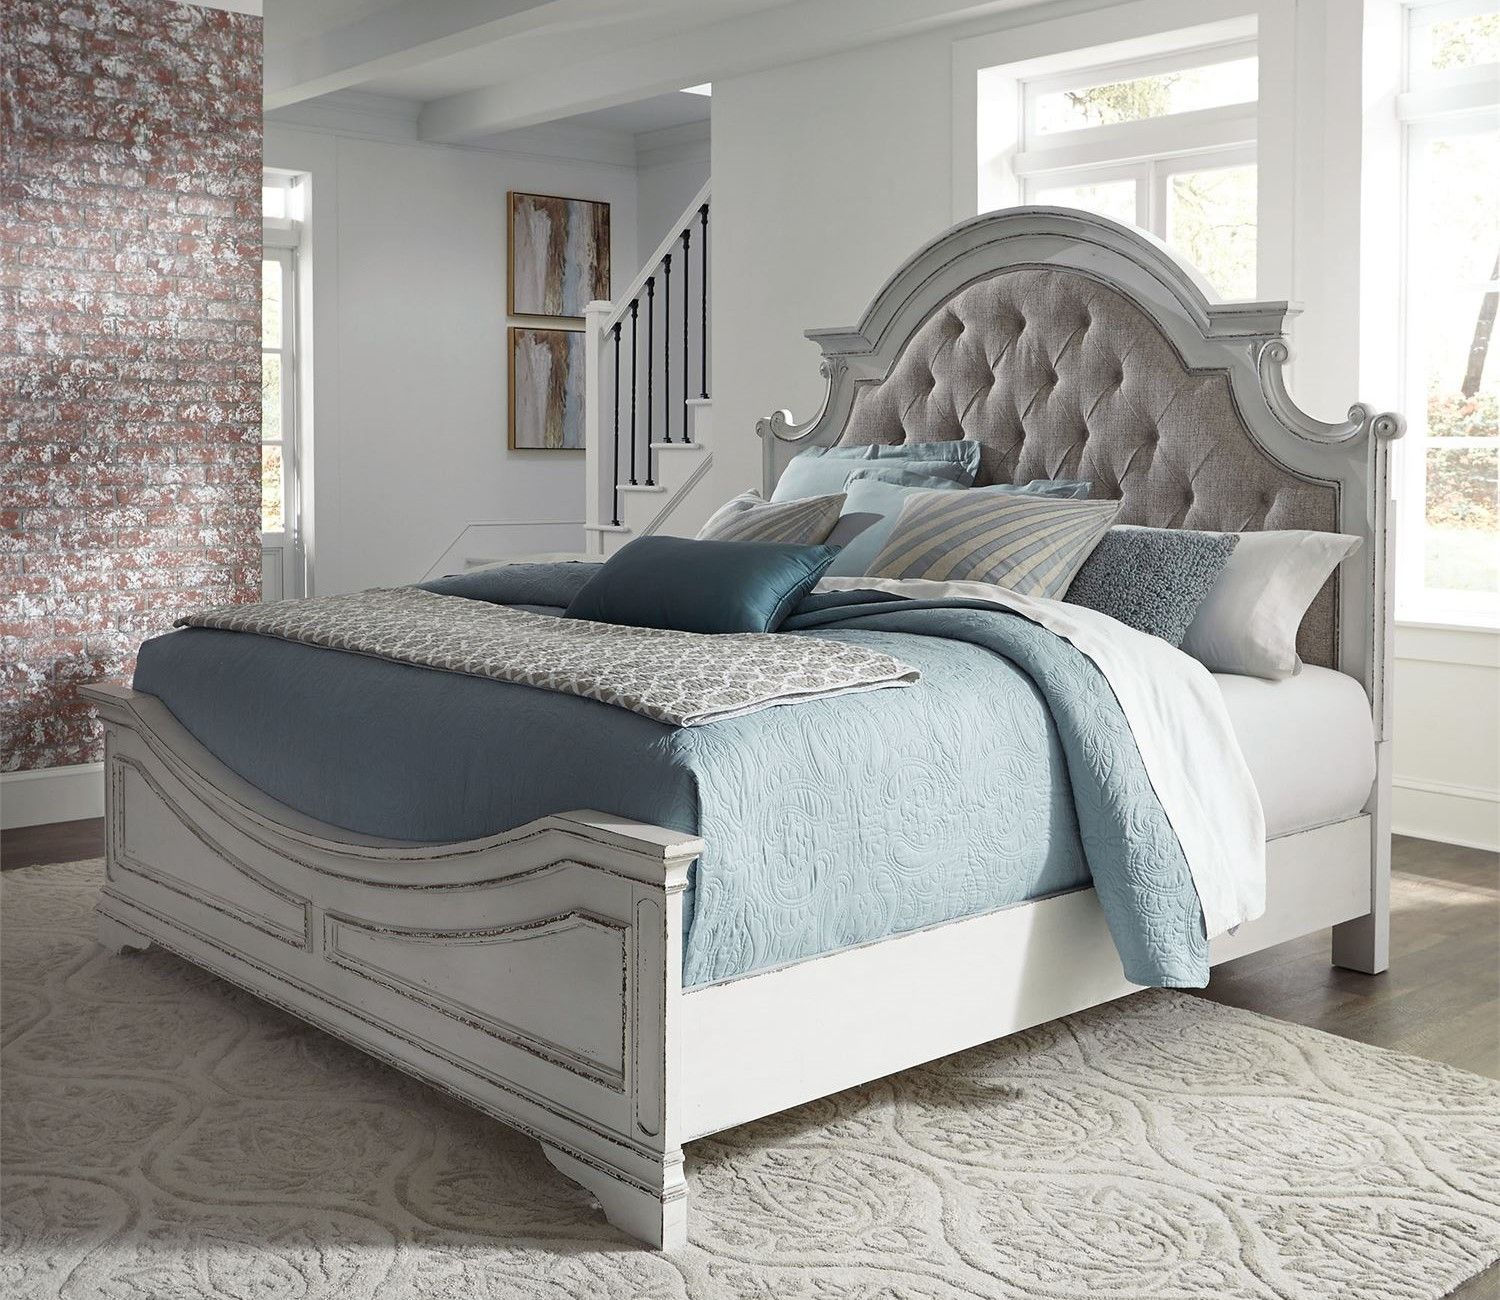 Magnolia Queen Panel Bedroom Set W/Tufted Beige Linen